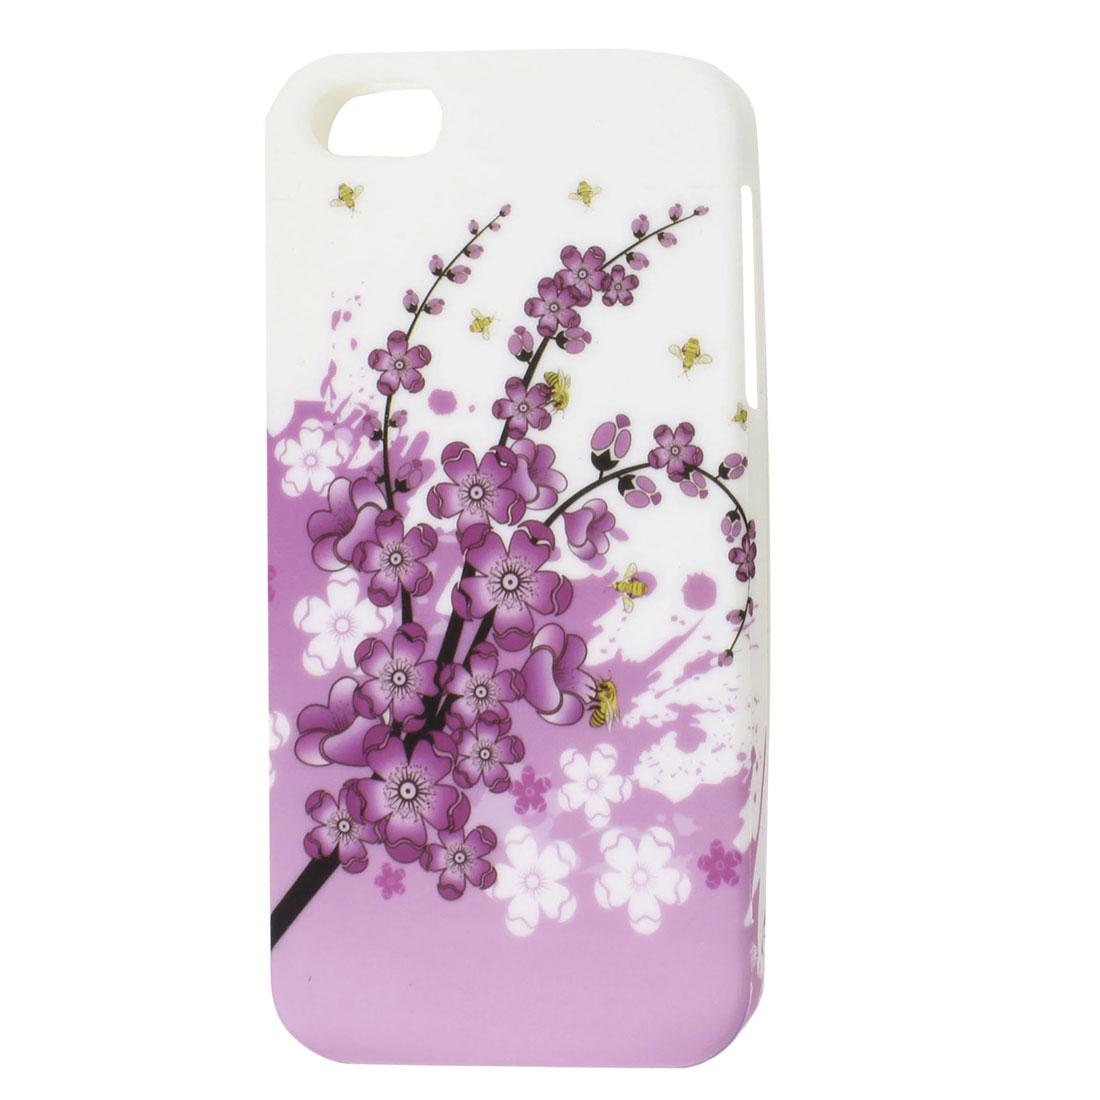 Pink Plum Flower Branch White TPU Soft Case Cover for Apple iPhone 5 5G